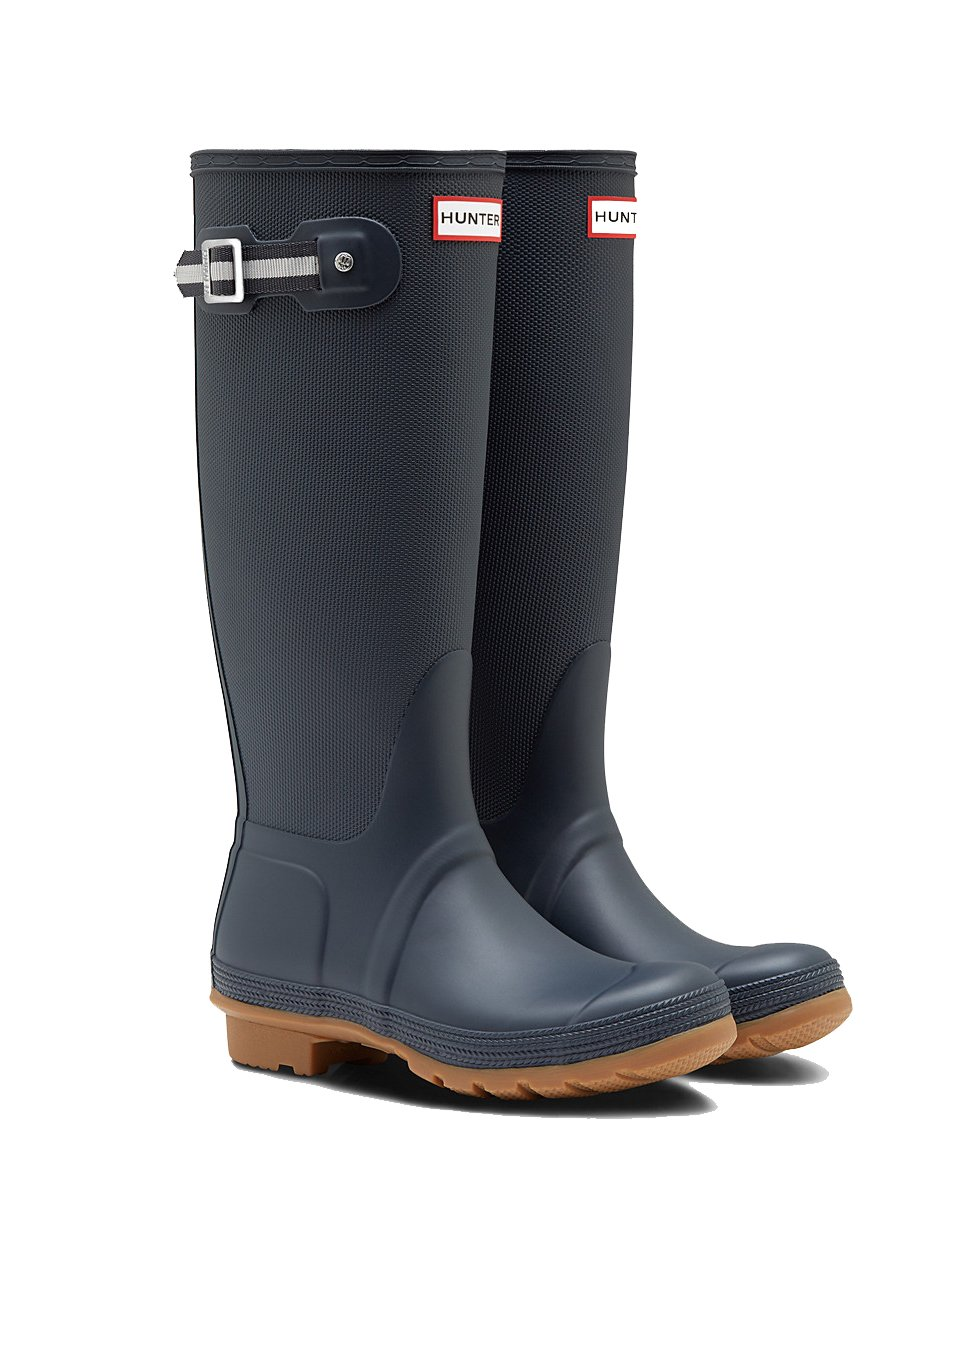 Hunter Women's Original Sissinghurst Tall Rain Boots (7 M US, Navy/Black) by Hunter